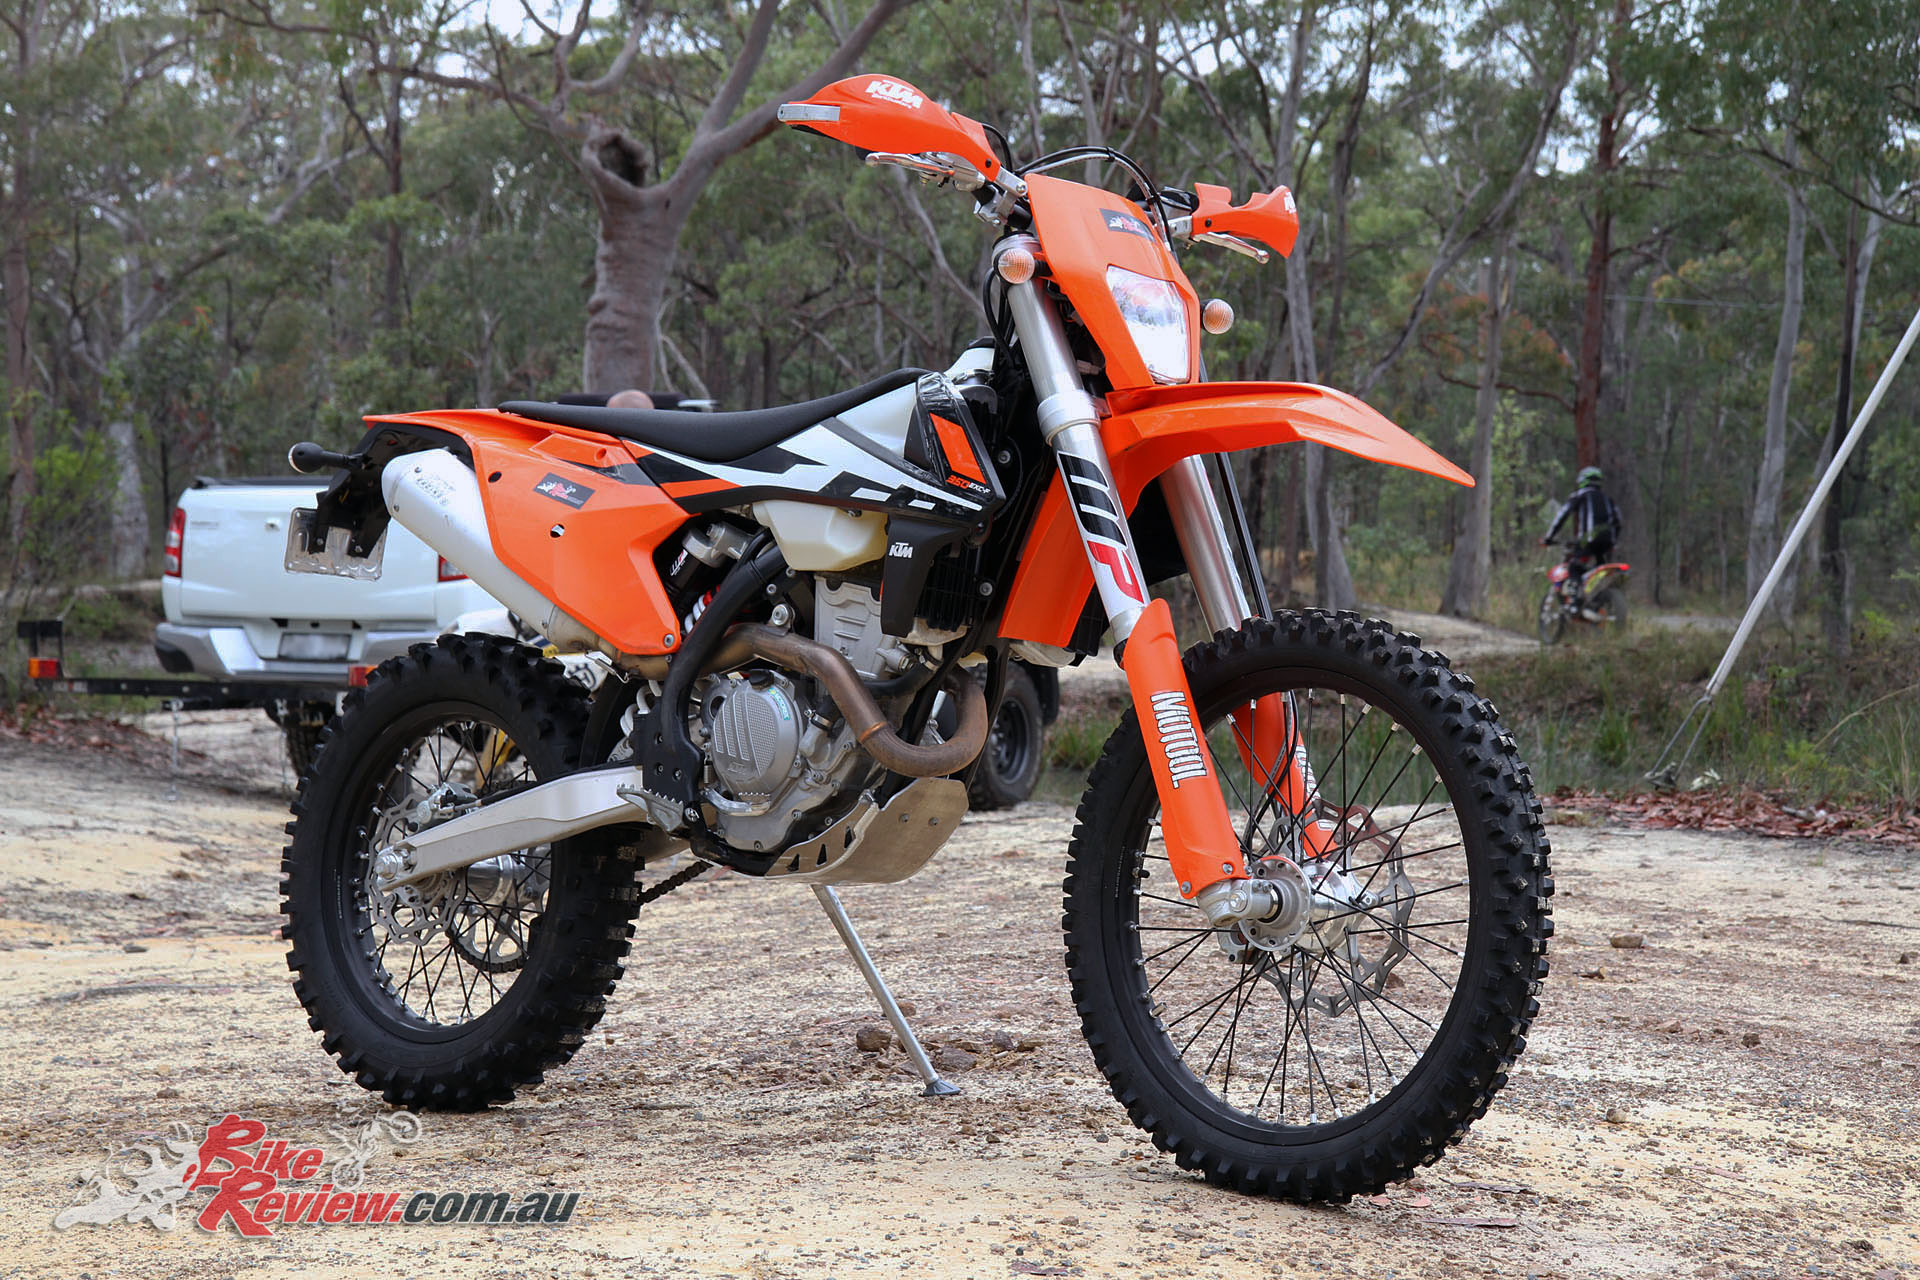 Bike Review's Long Term KTM 350 EXC-F